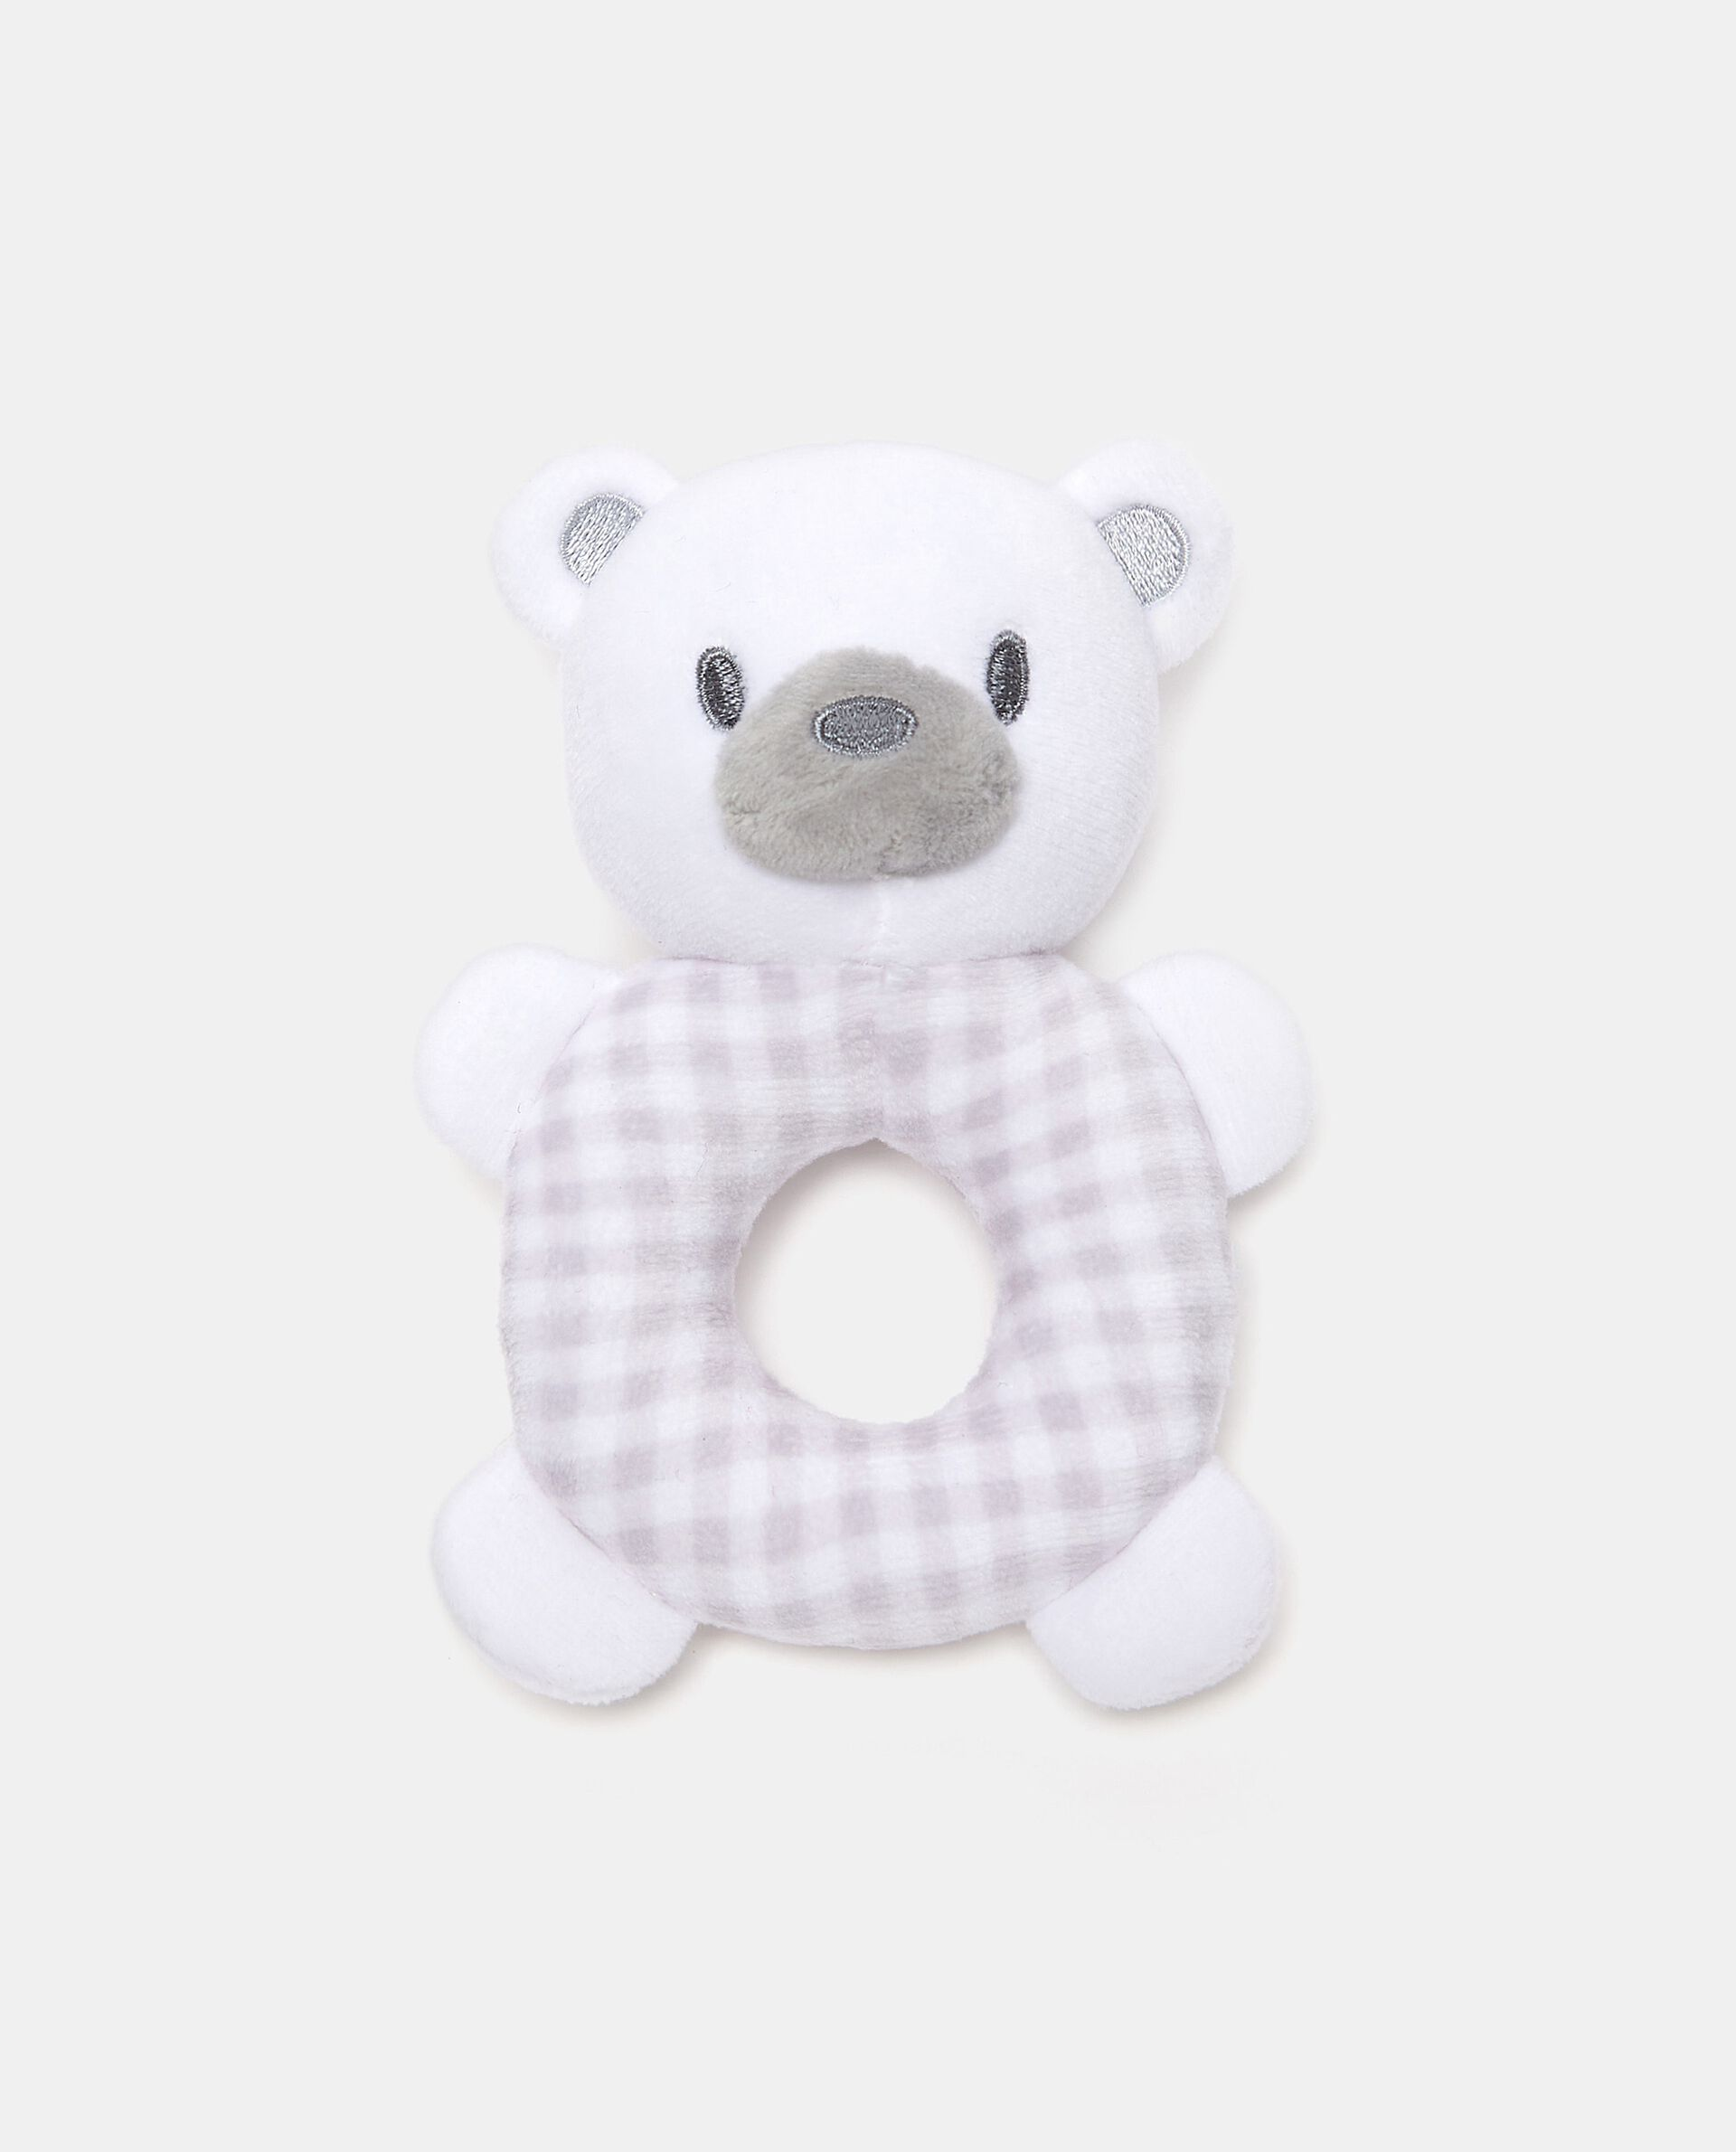 Doudou orsetto ad anello in peluche